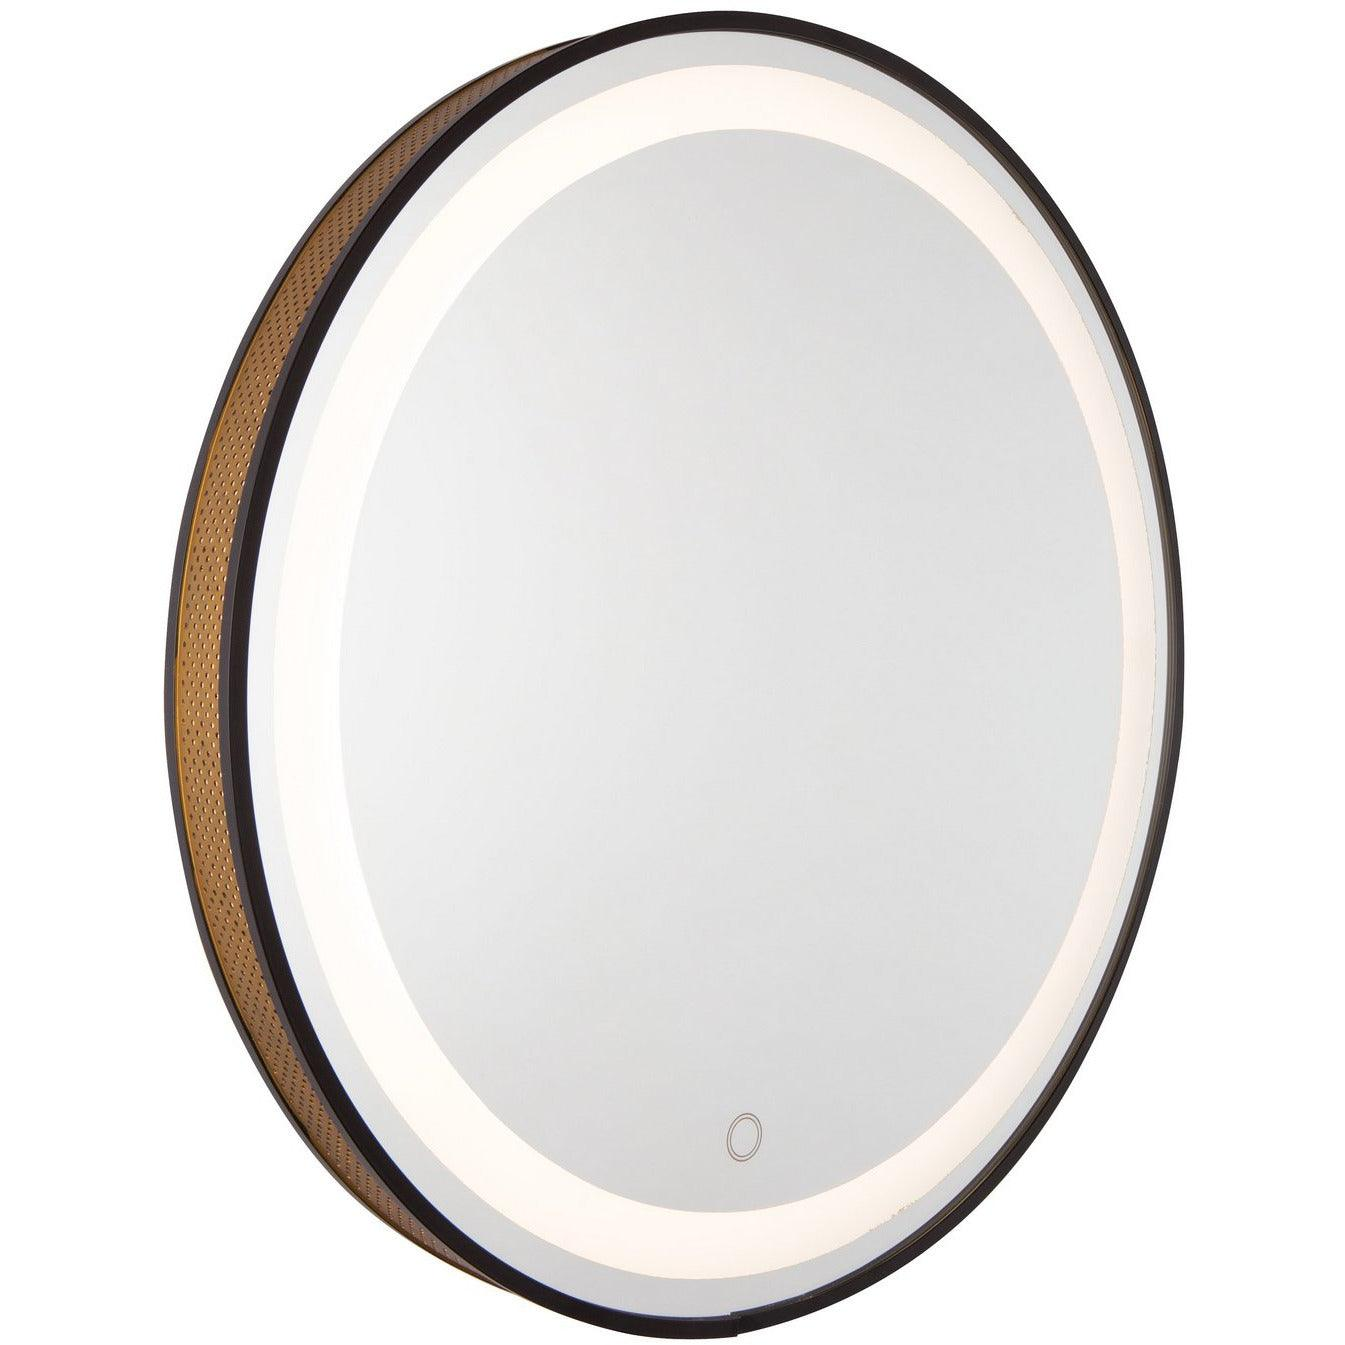 Artcraft Lighting - AM315 - LED Mirror - Reflections - Matte Black & Gold